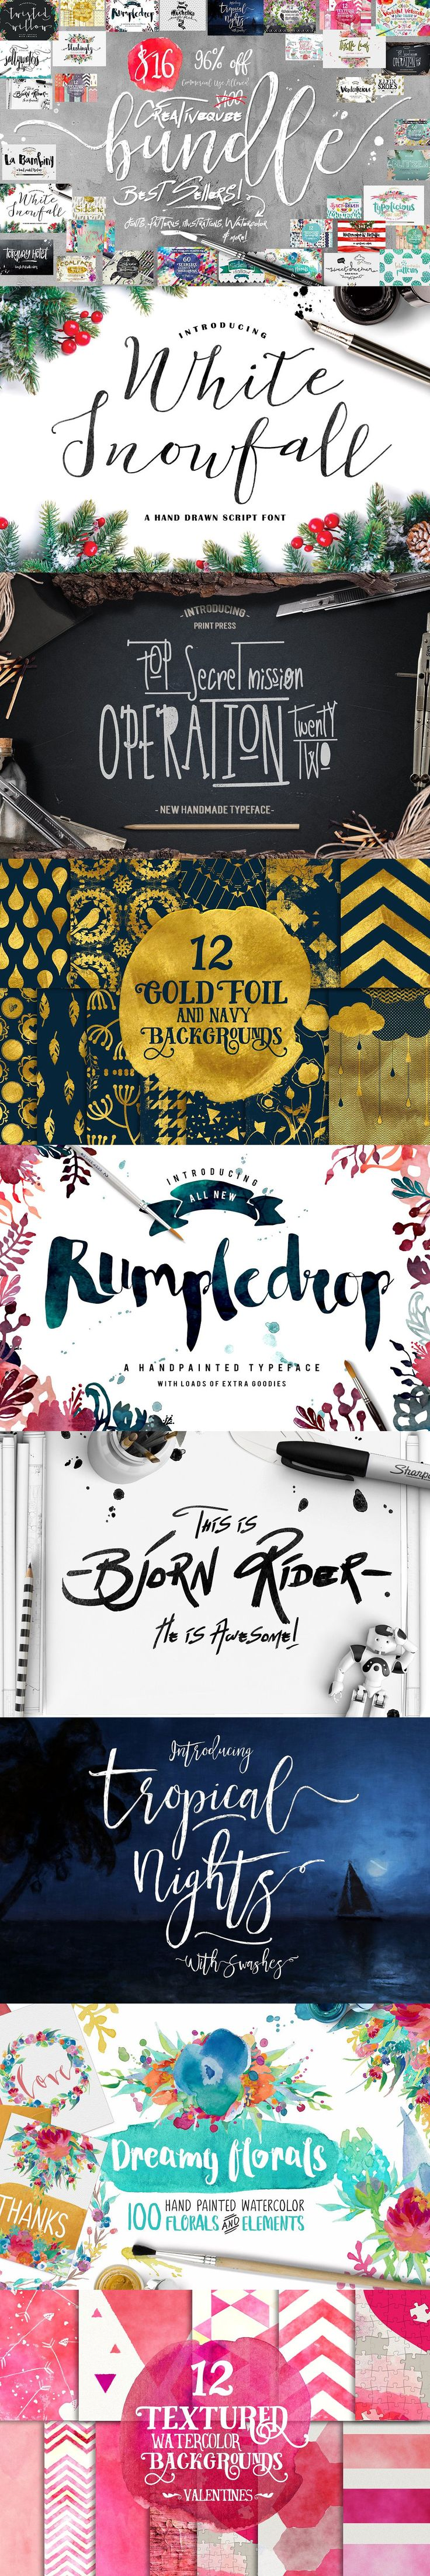 96% OFF Font Bundle Plus #Graphics ( #typography #retro #logodesign #whisky #print #inspiration #typeface #decorative #scrapbooking #watercolor #fashion #lettering )